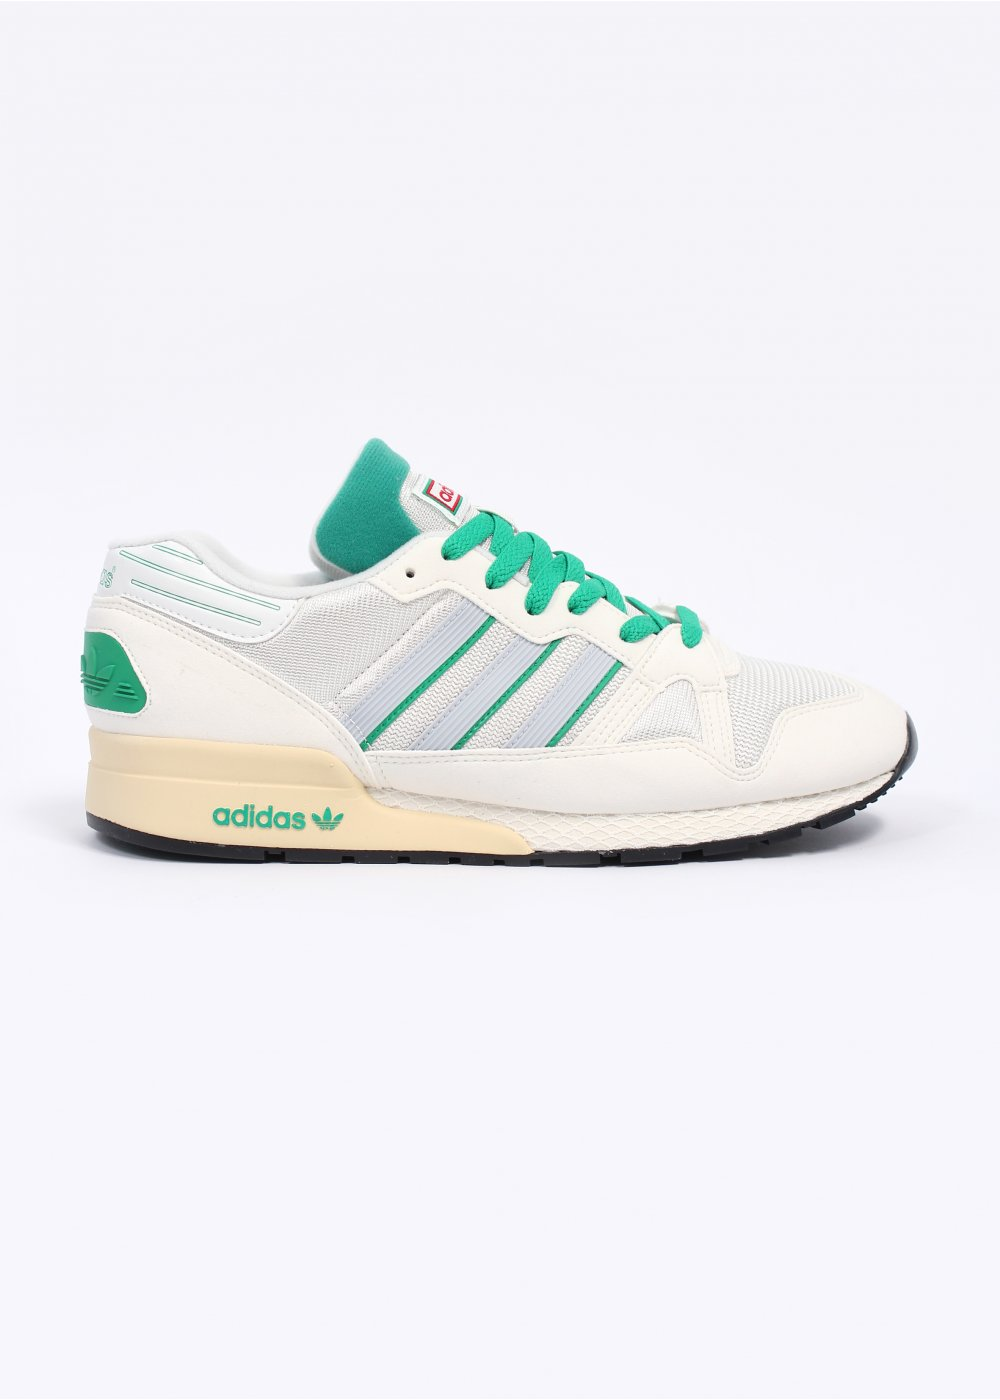 3a23cedcffe5c1 adidas Originals ZX 710 OG Trainers - White Vapour   Fresh Green